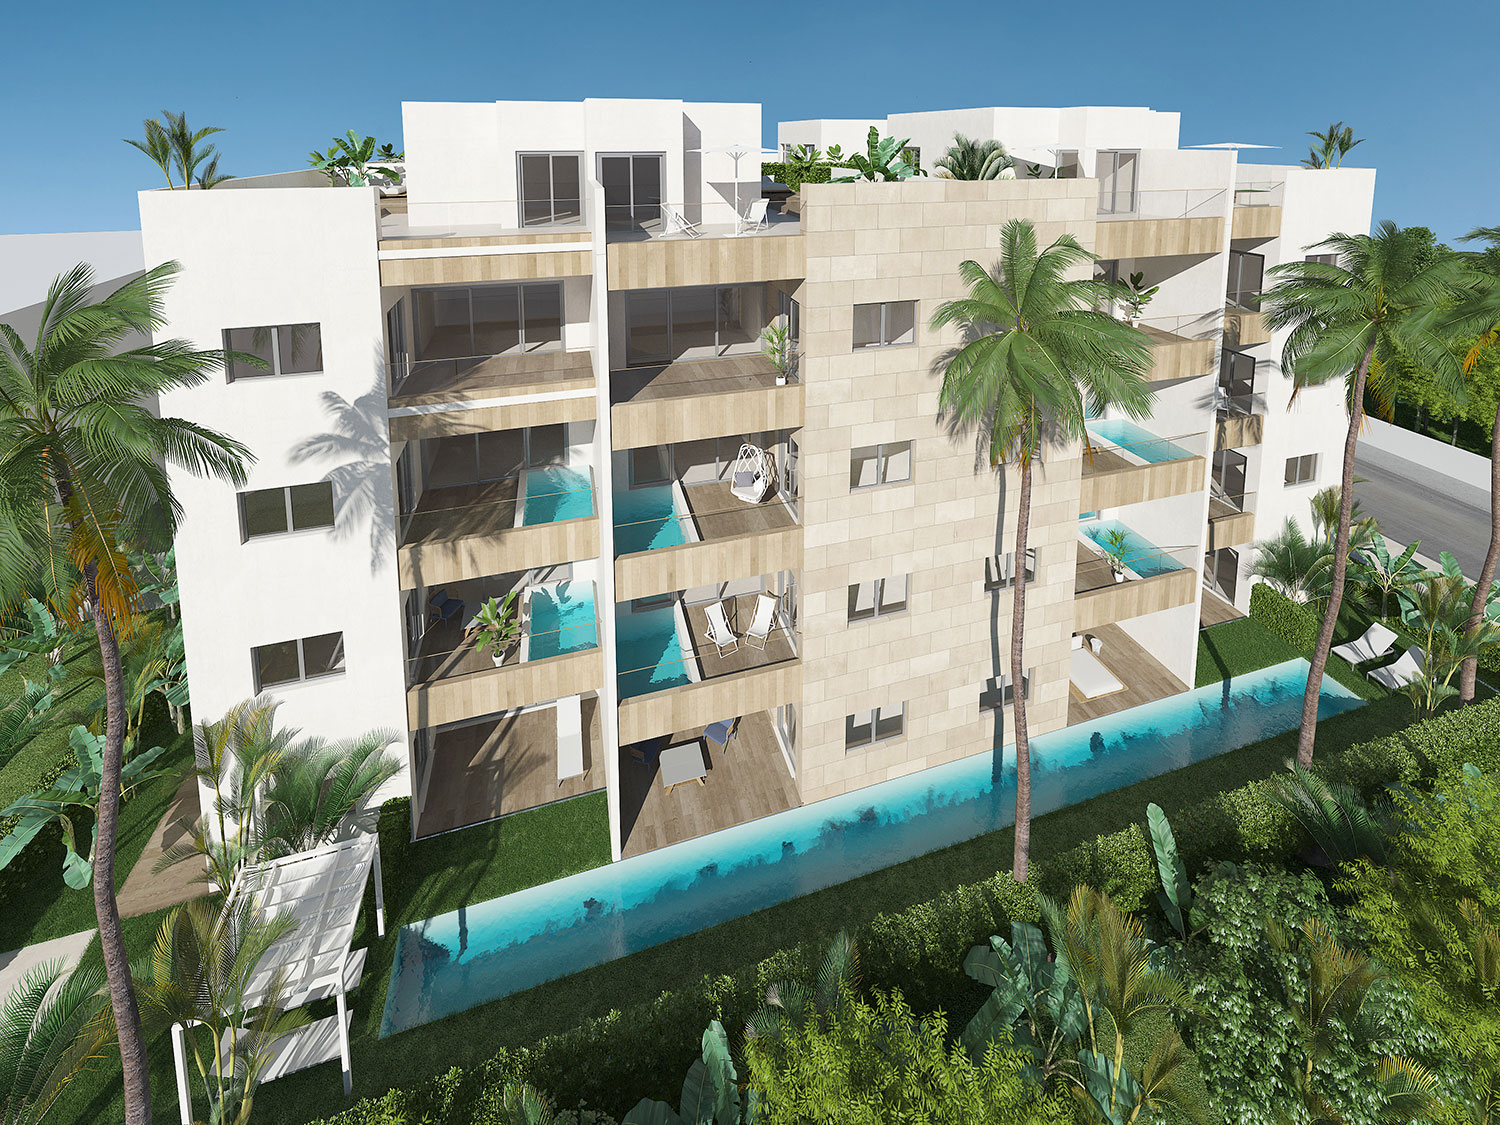 LUXURY APARTMENTS WITH ITS OWN PRIVATE POOL IN GARDEN RESIDENCE  (POOLG-COR)